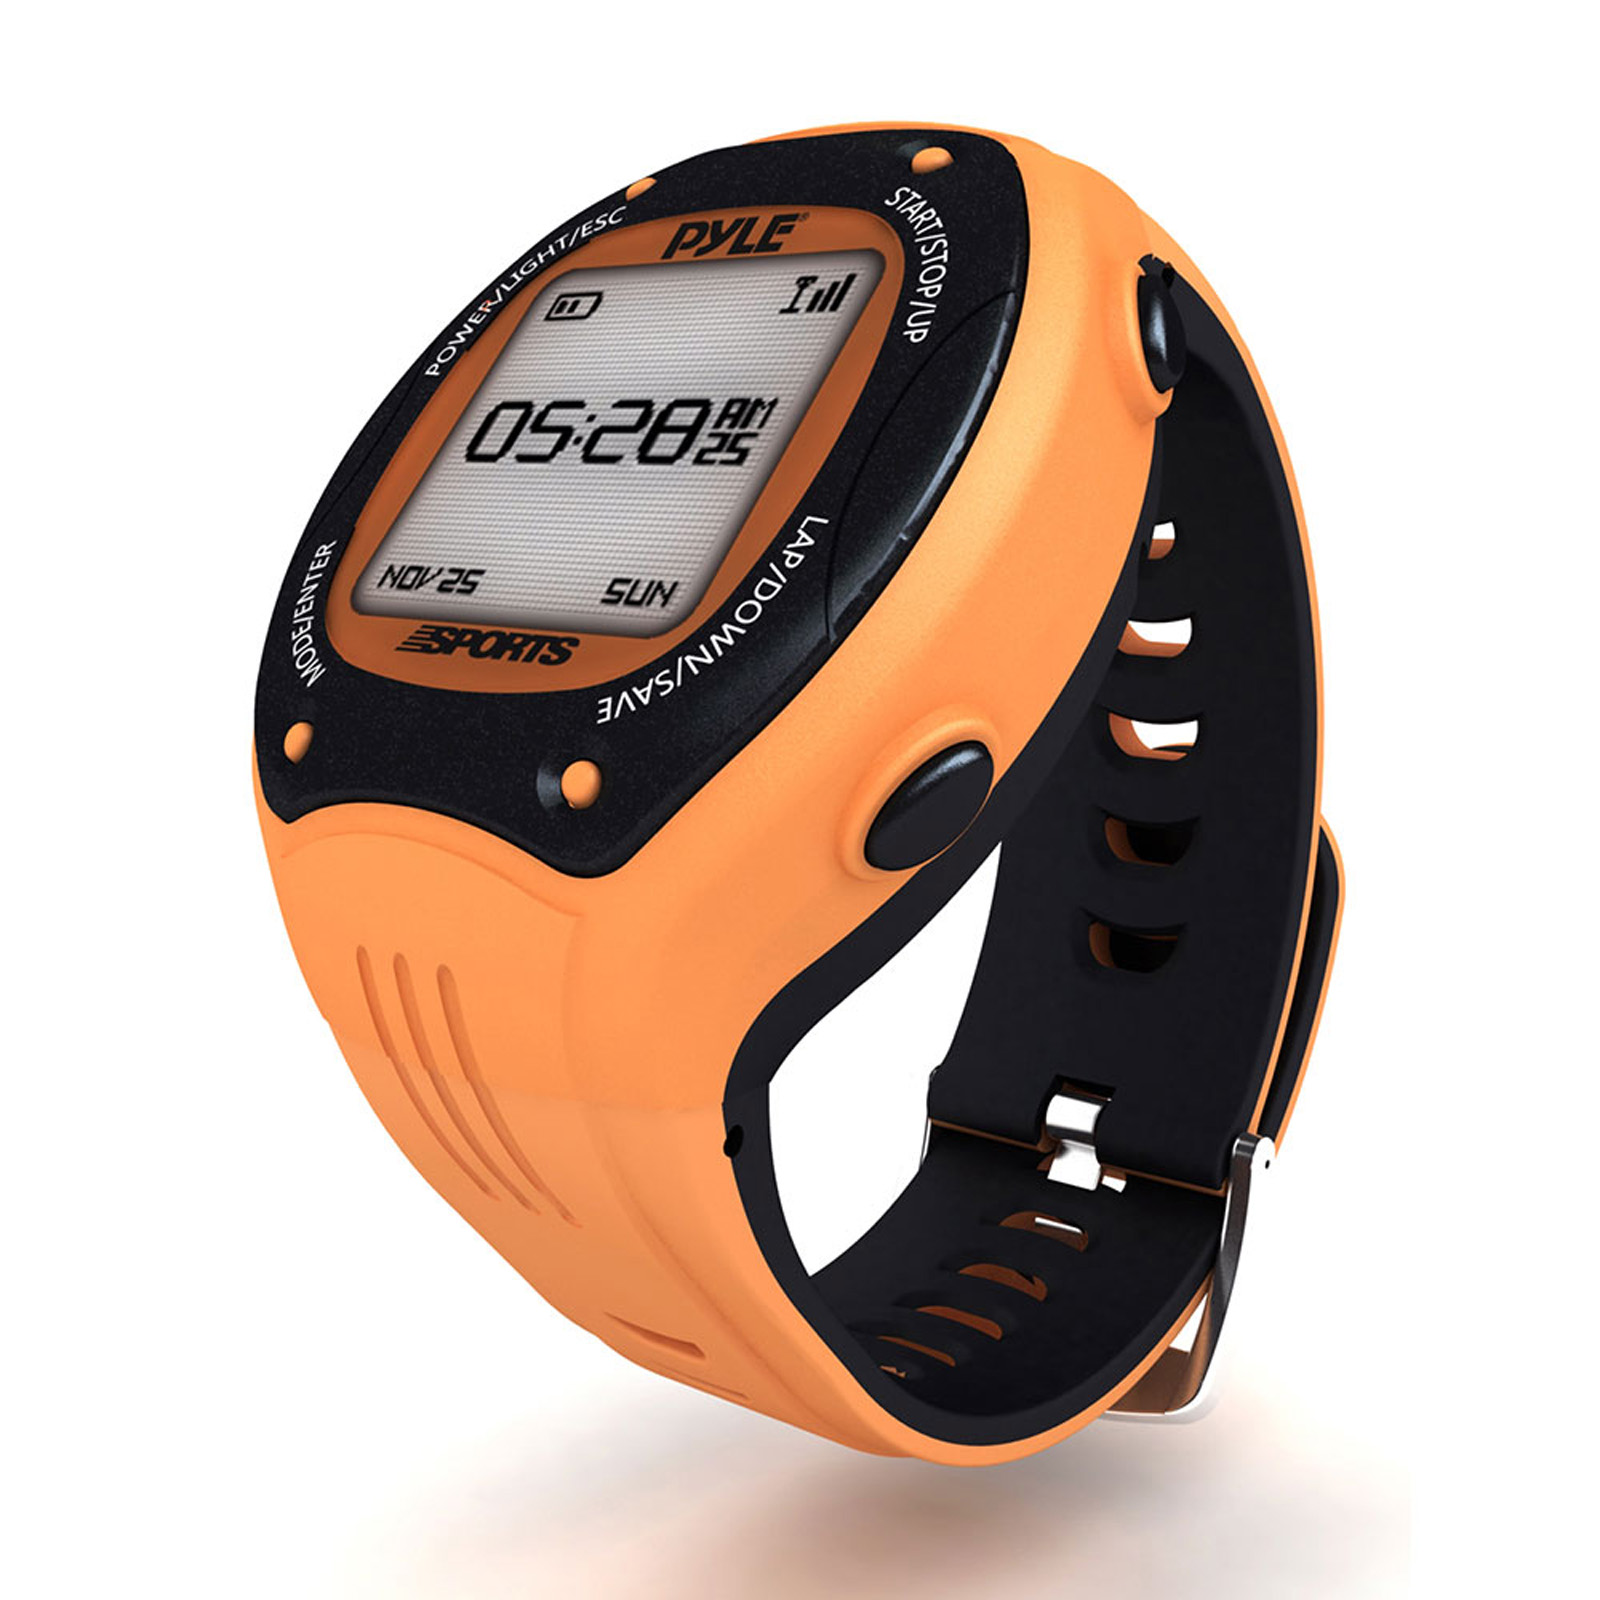 Pyle Multi-Function LED Sports Training Watch with GPS Navigation (Orange Color)